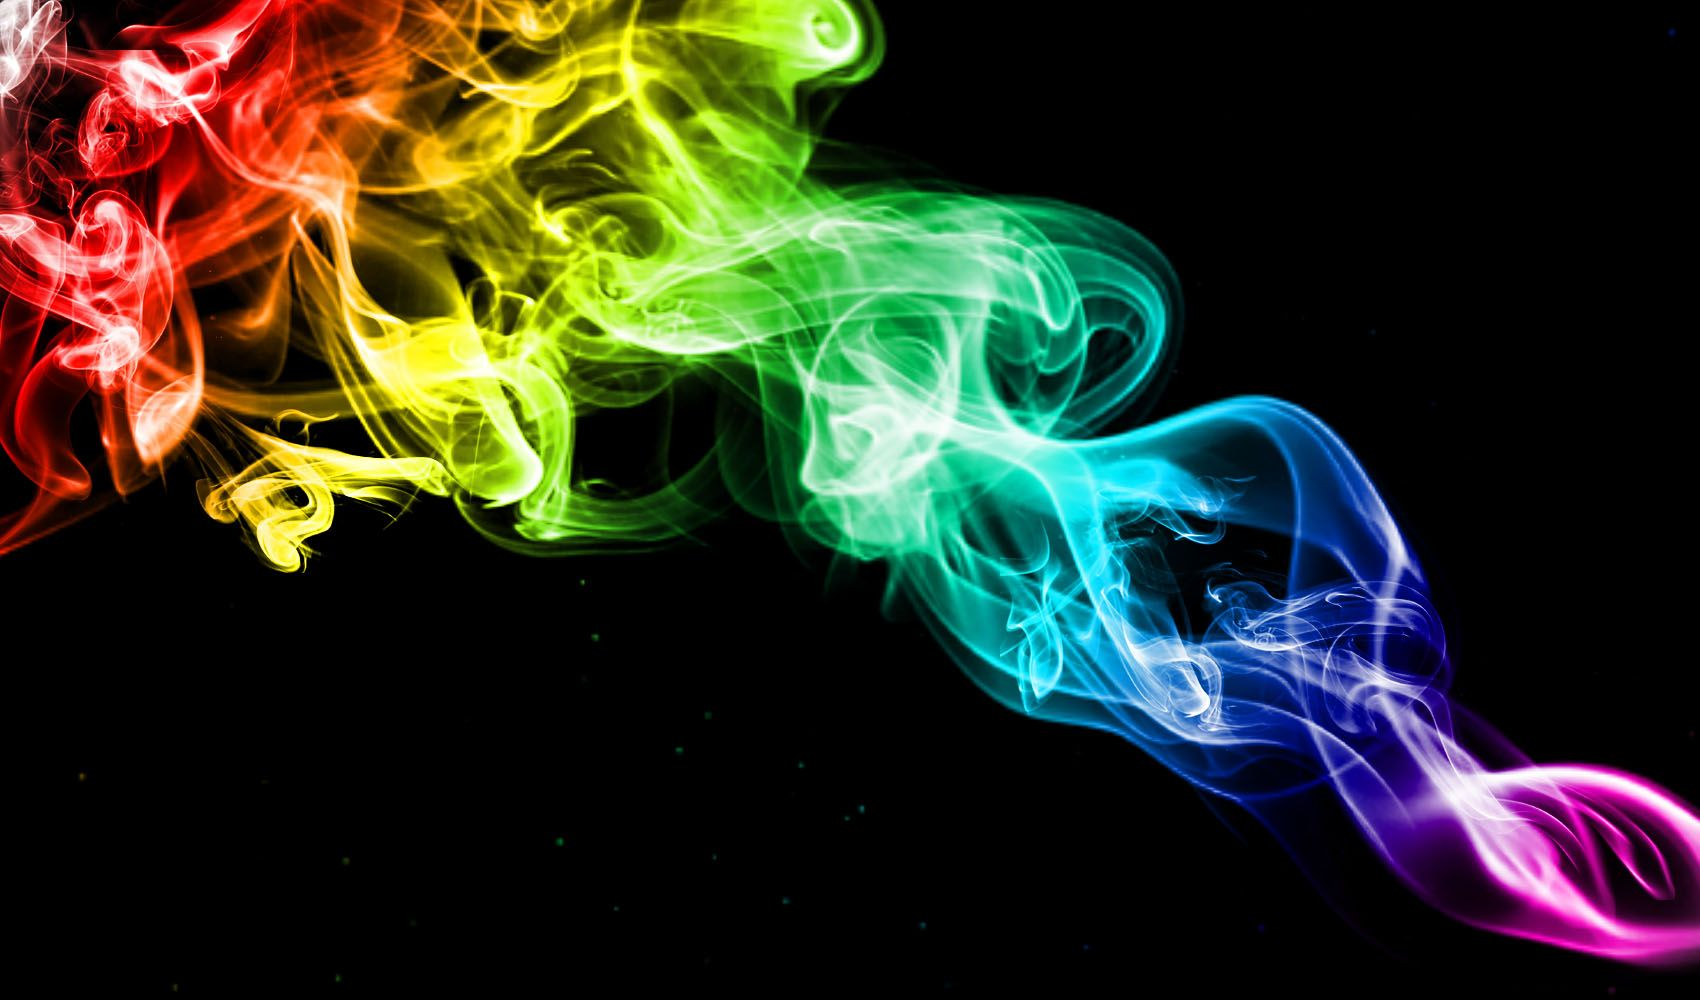 smoke weed with color - photo #25